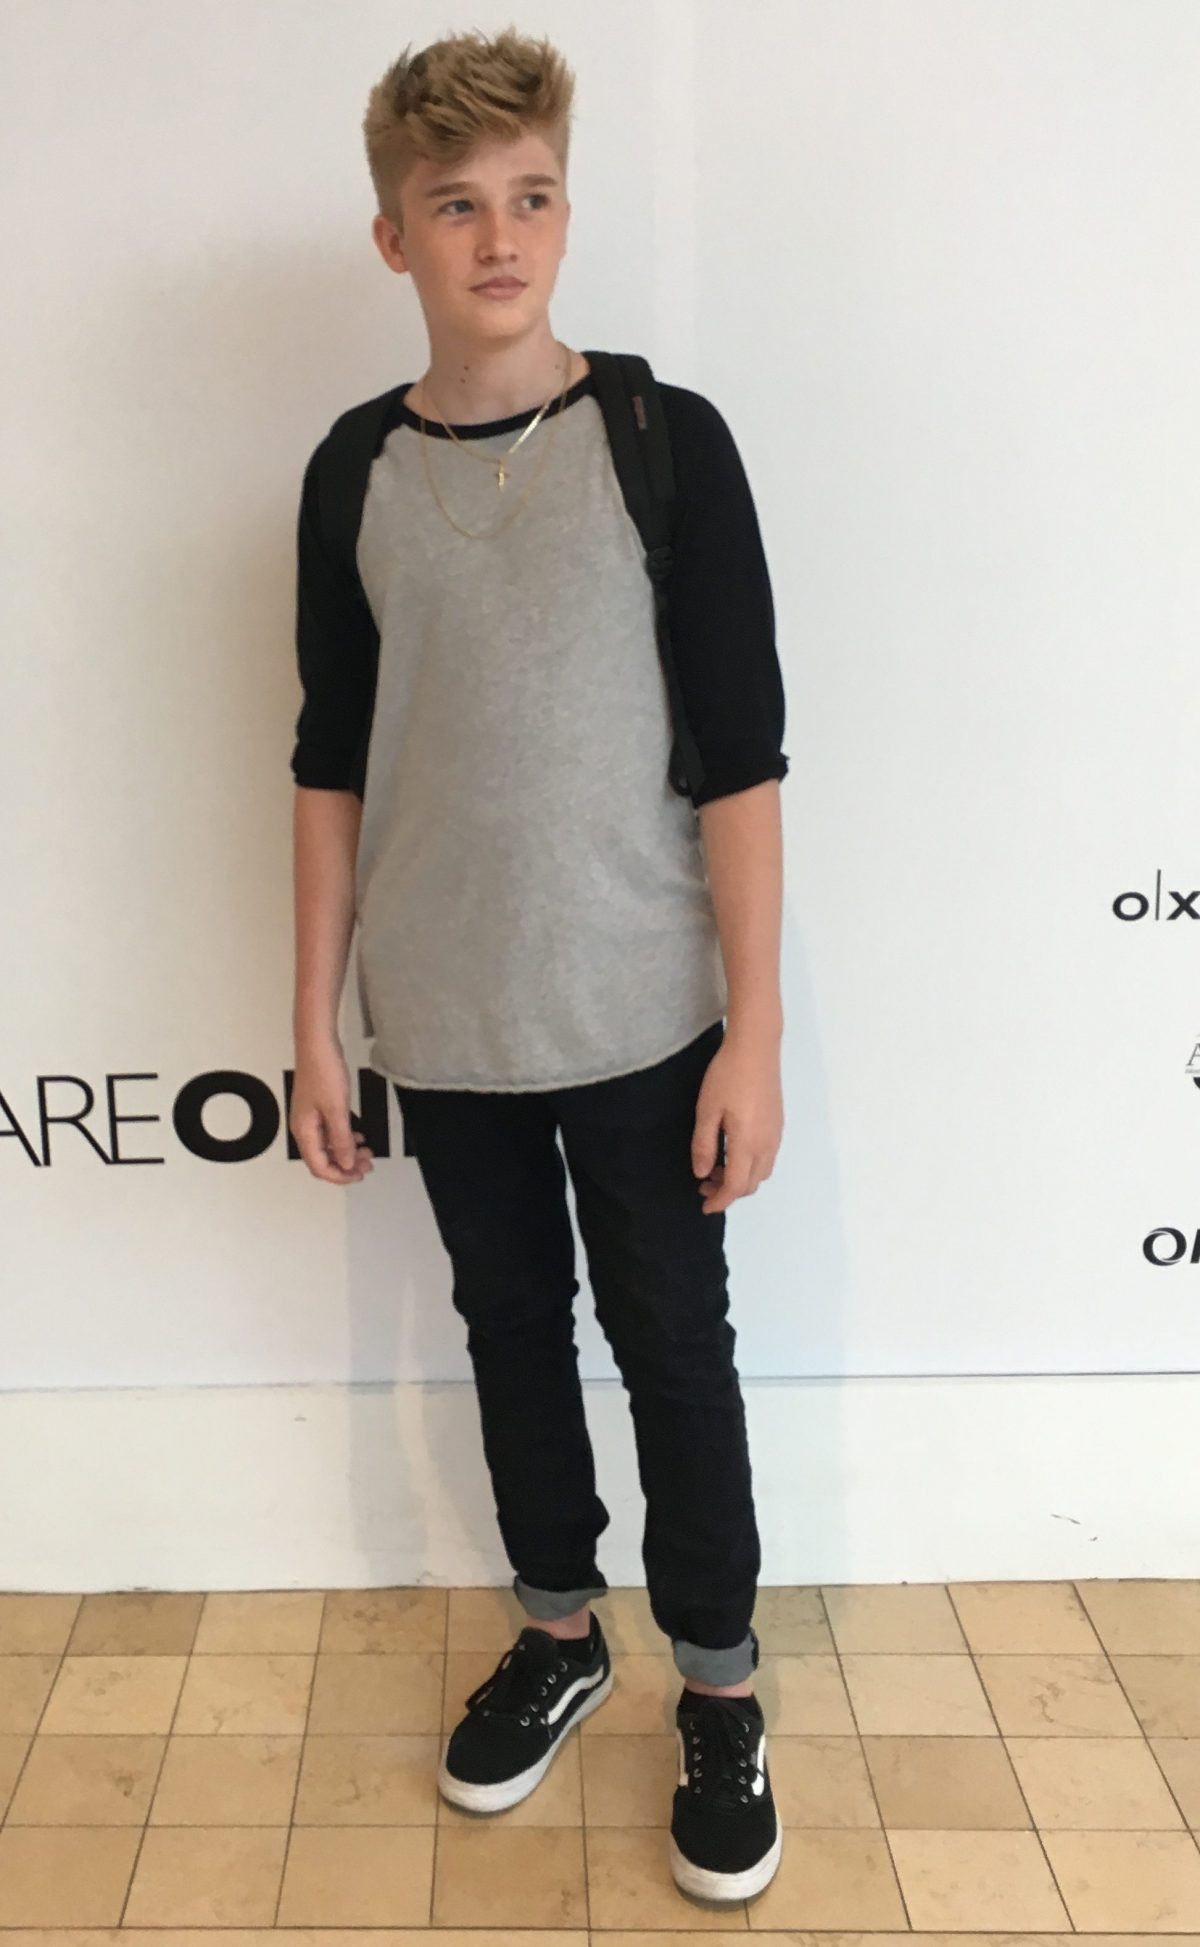 Square One mall boy fashion in Mississauga